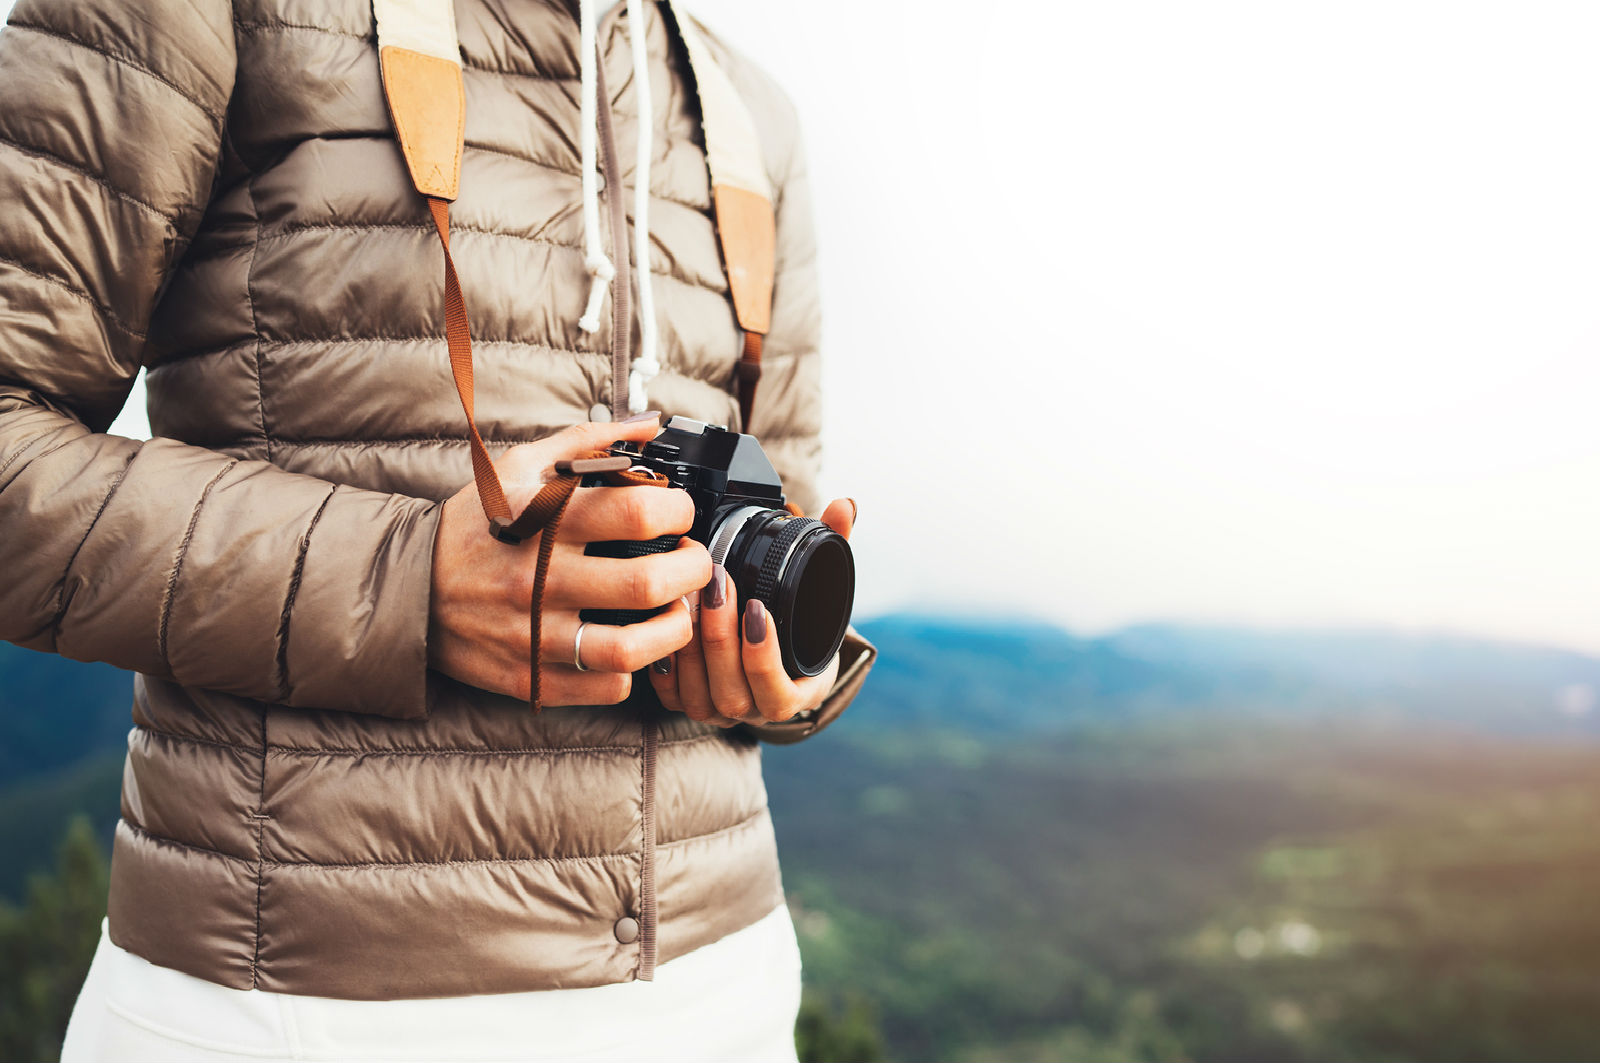 Three Travel Tips to Take Better Pictures on Your Next Trip